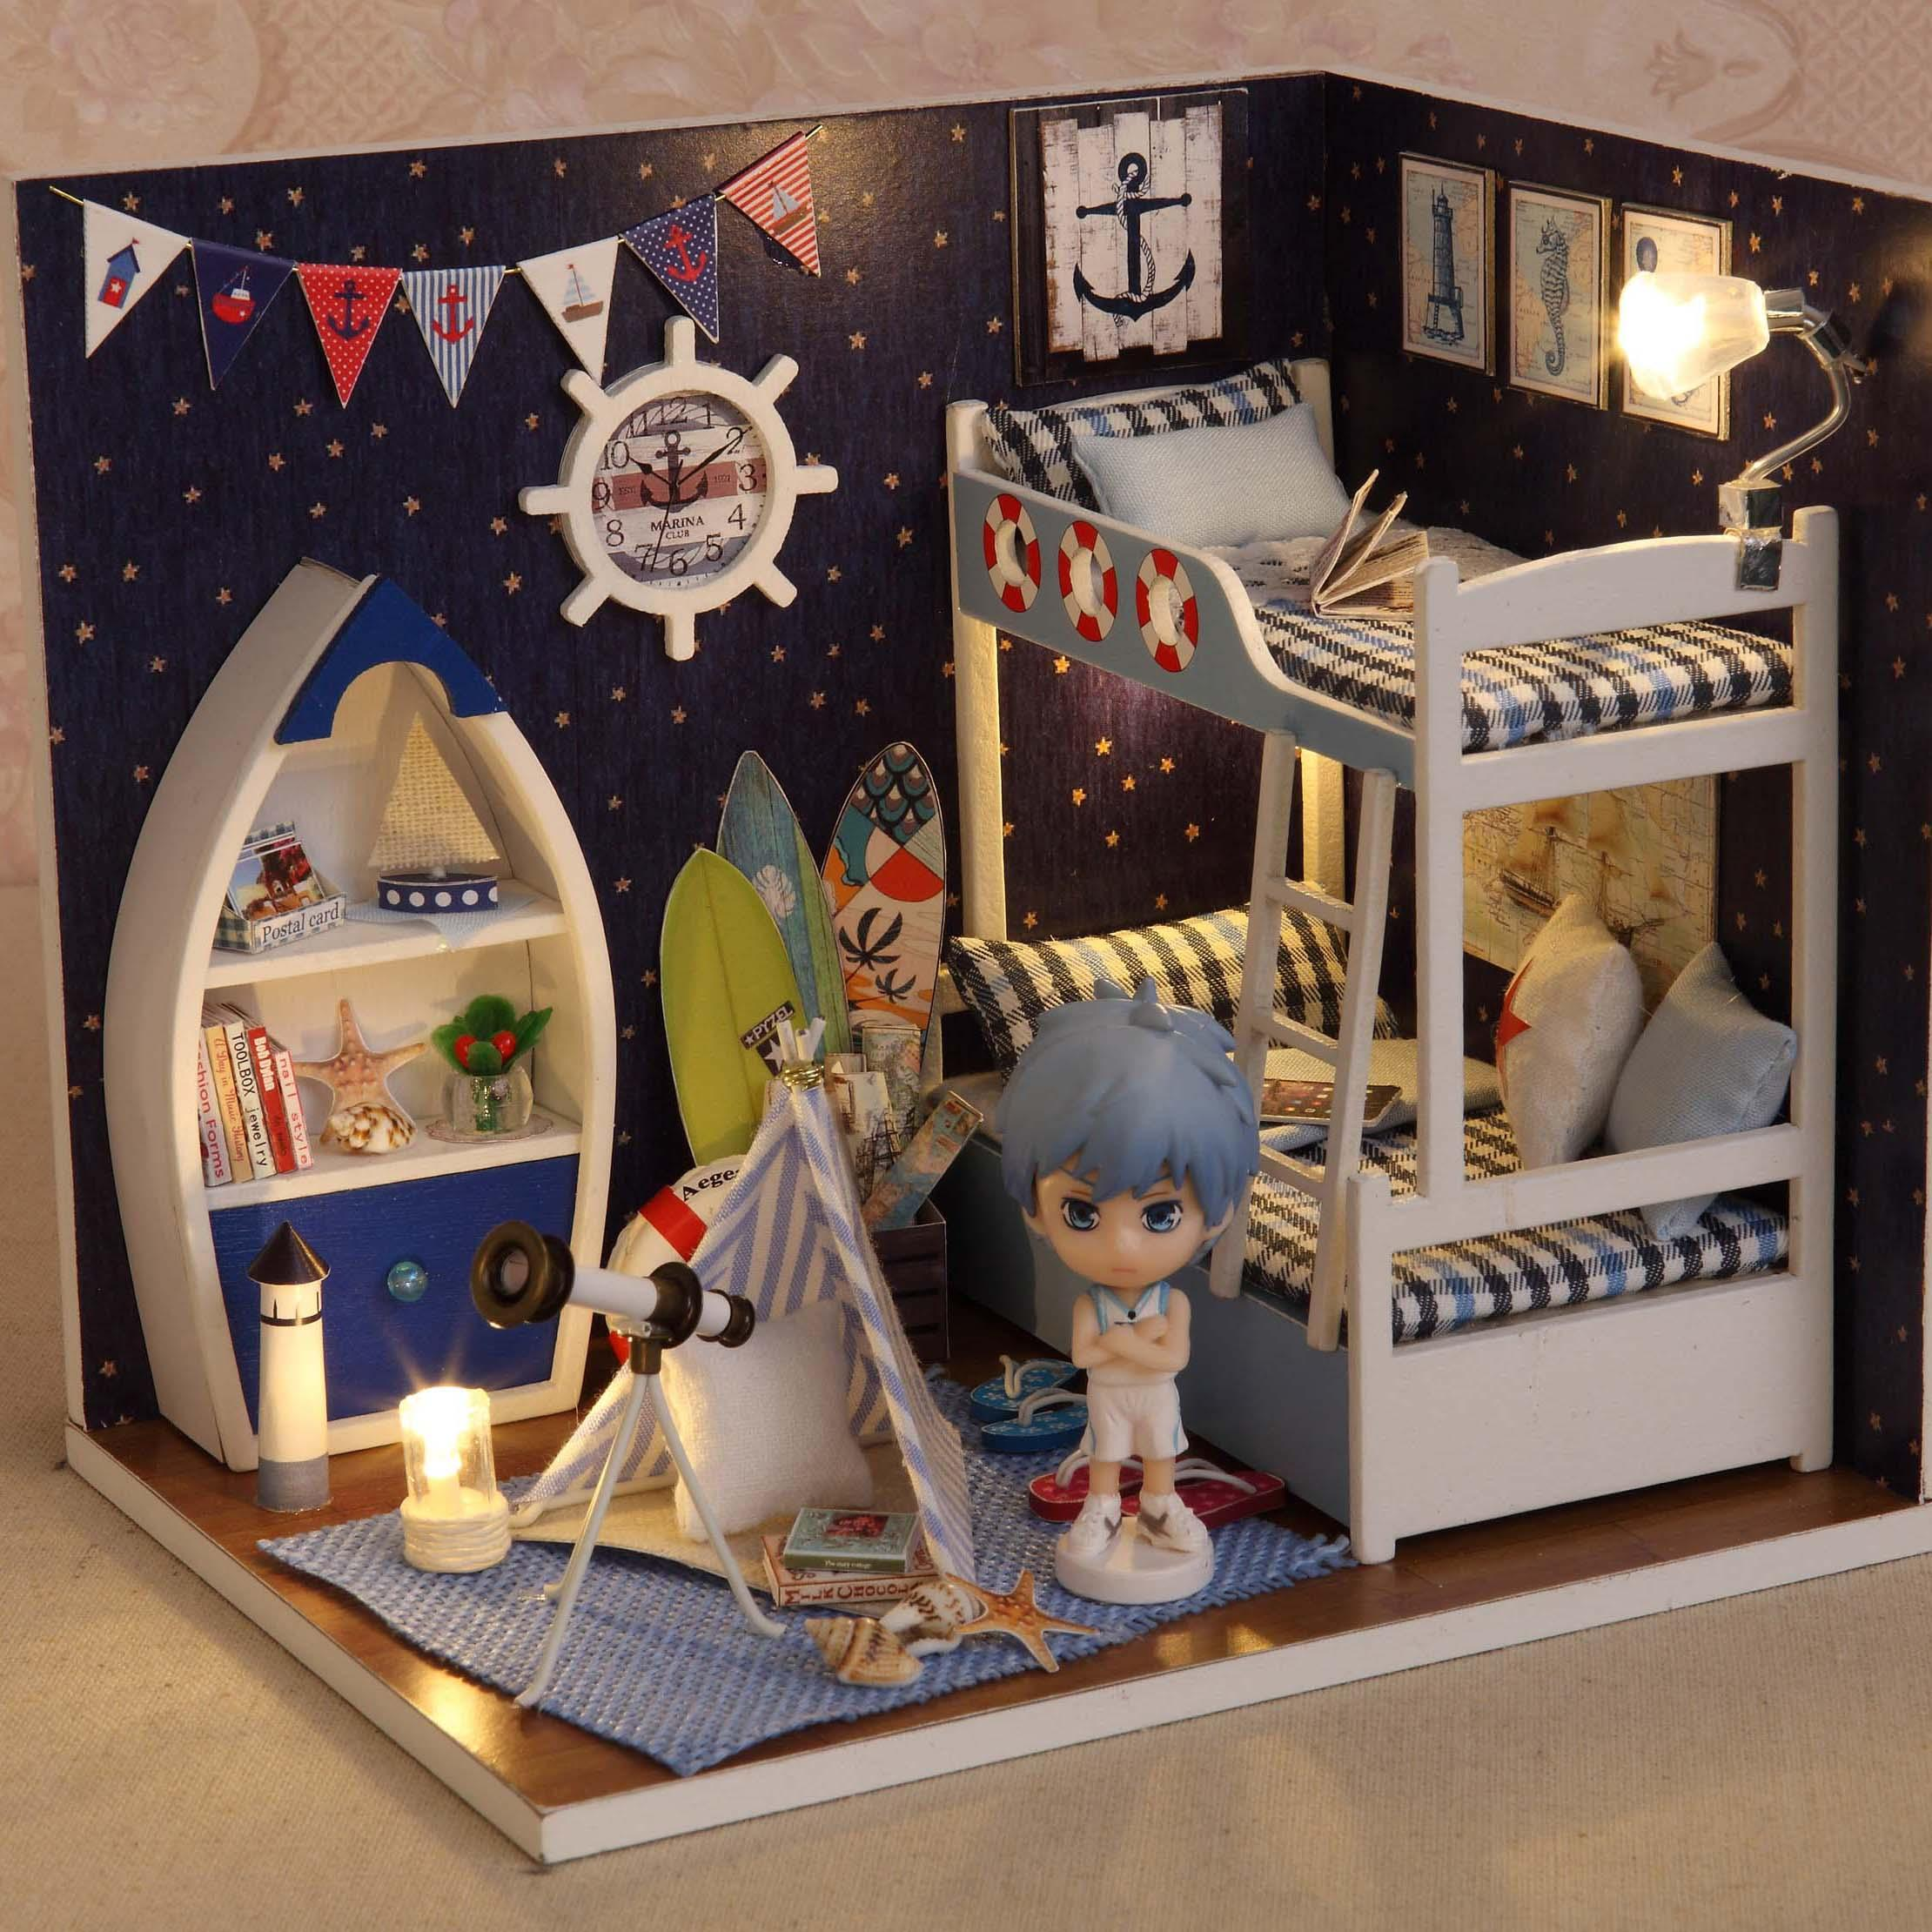 Cuteroom Diy Wooden Dollhouse Face To Sky Handmade Decorations Model